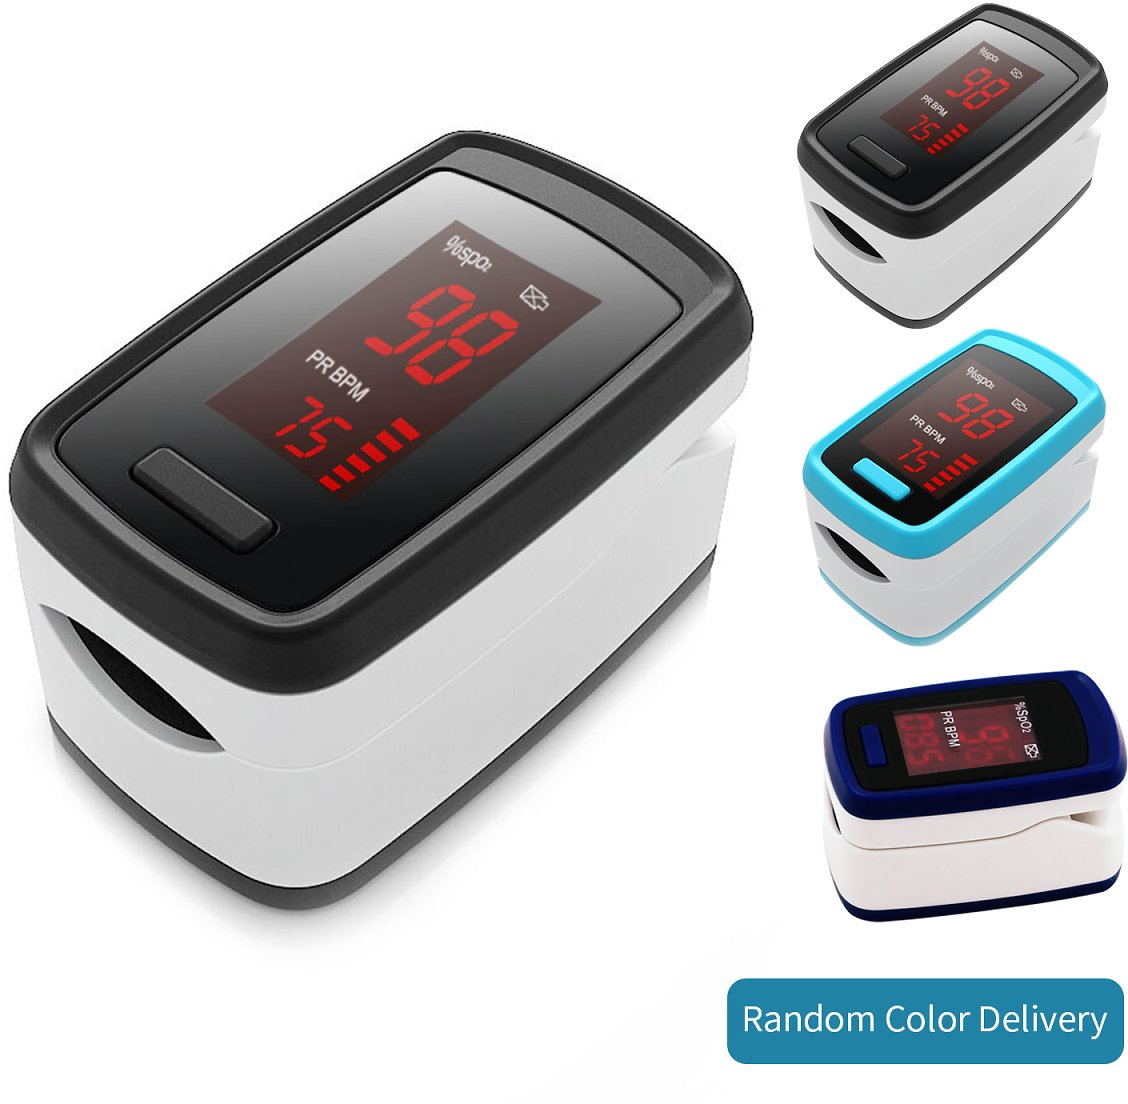 Portable Fingertip B-lood Oxygen Pulse Rate Monitor